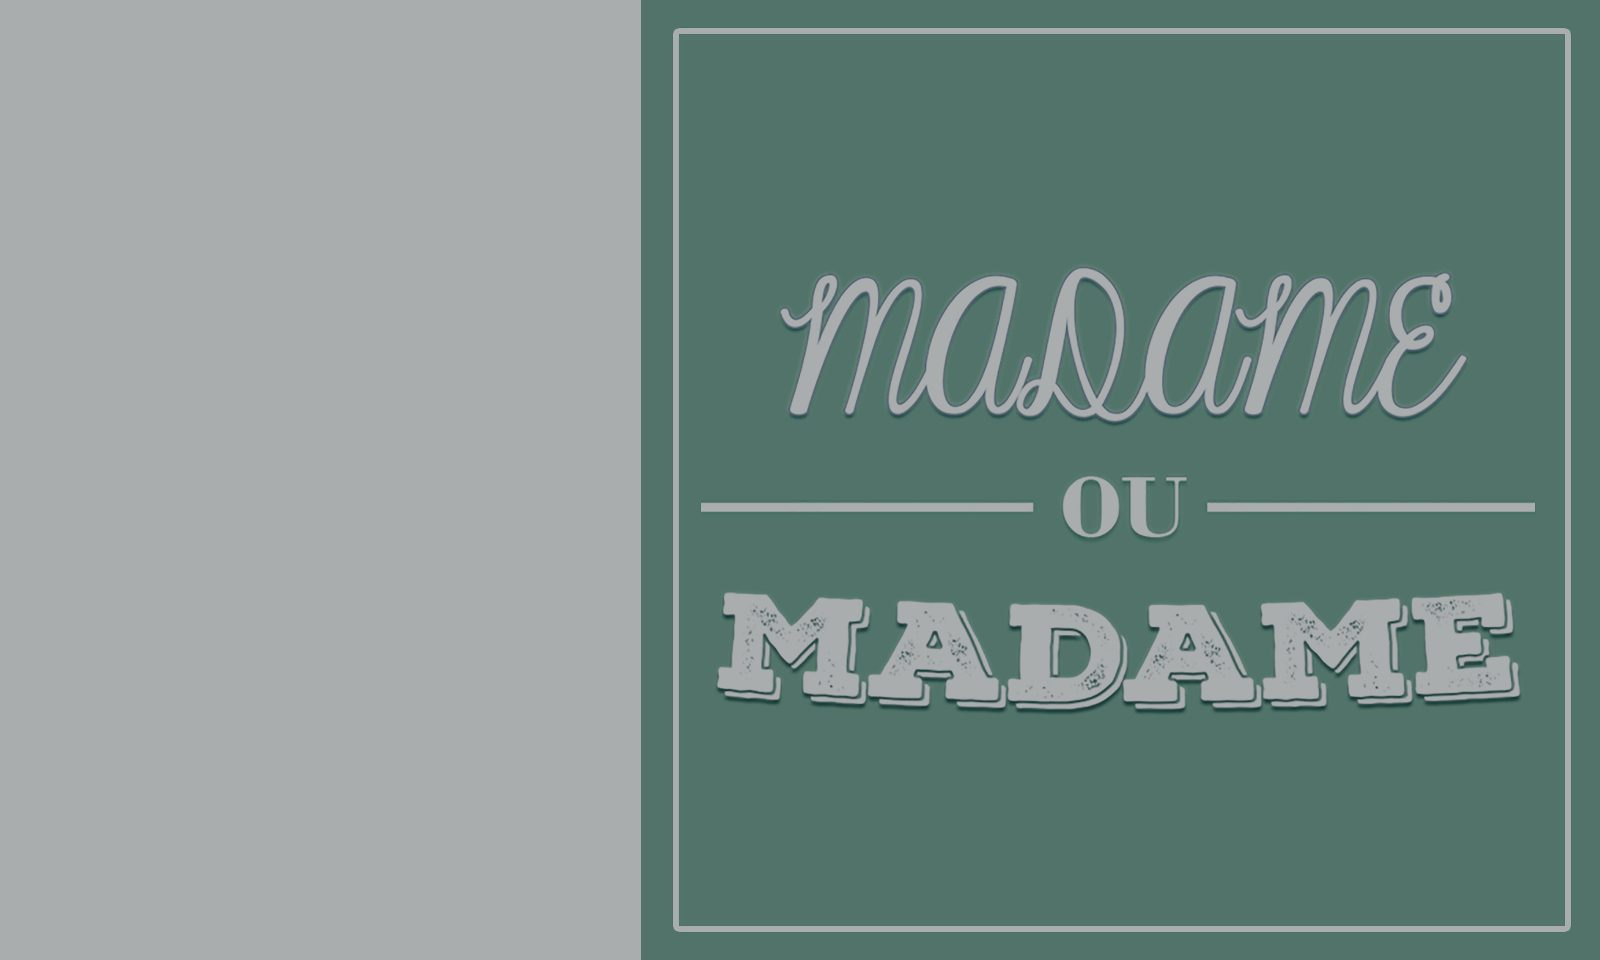 Archives mai 2020 - Madame ou Madame - L'émission de radio